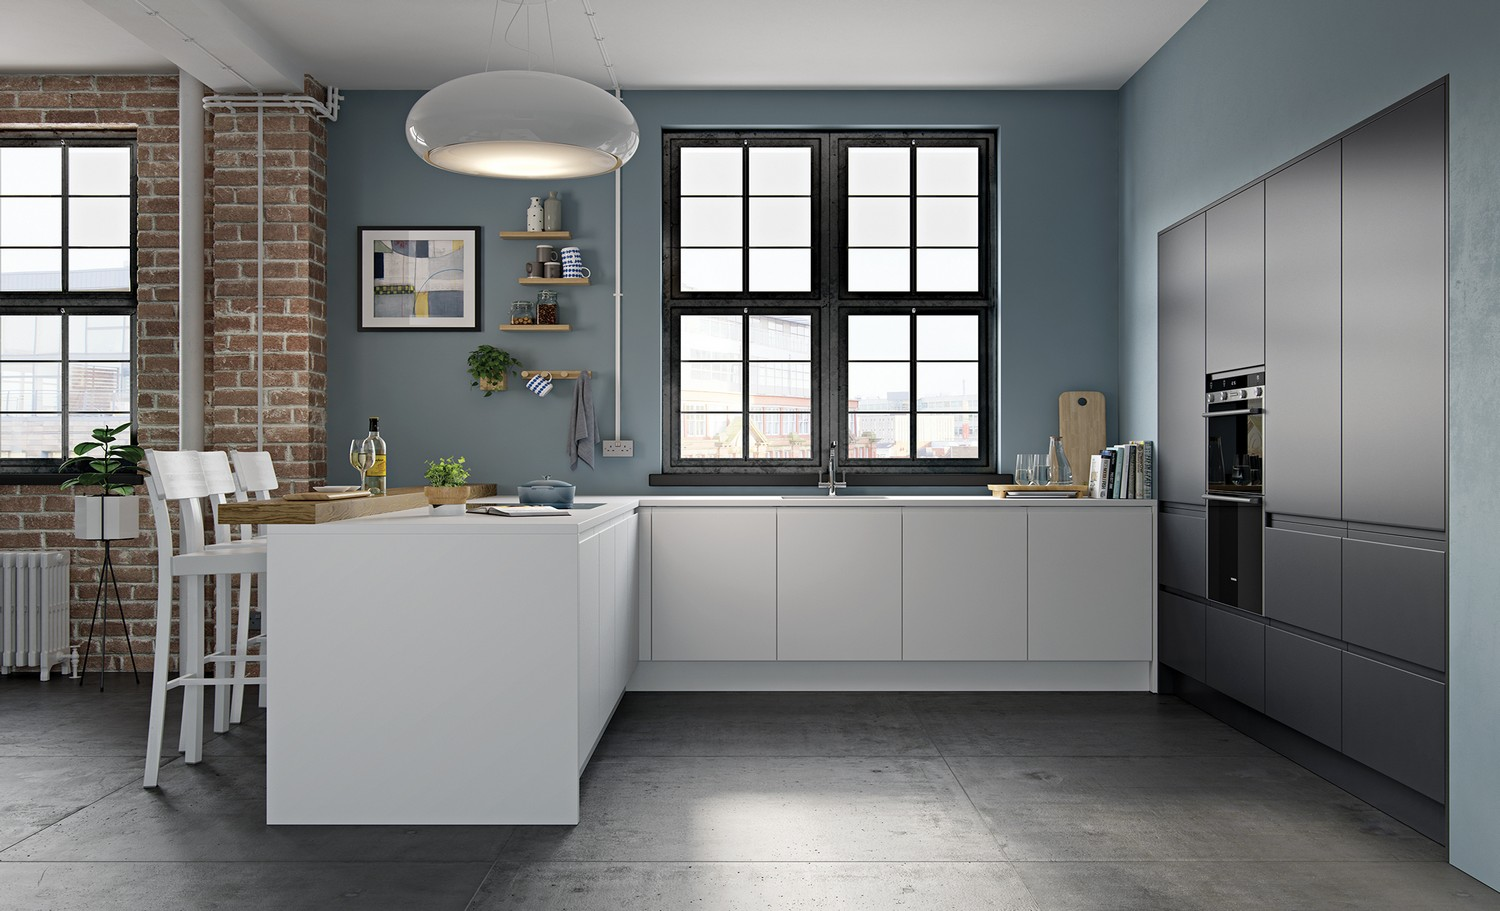 Modern Kitchens Liverpool Cleveland Kitchens - Anthracite grey kitchen